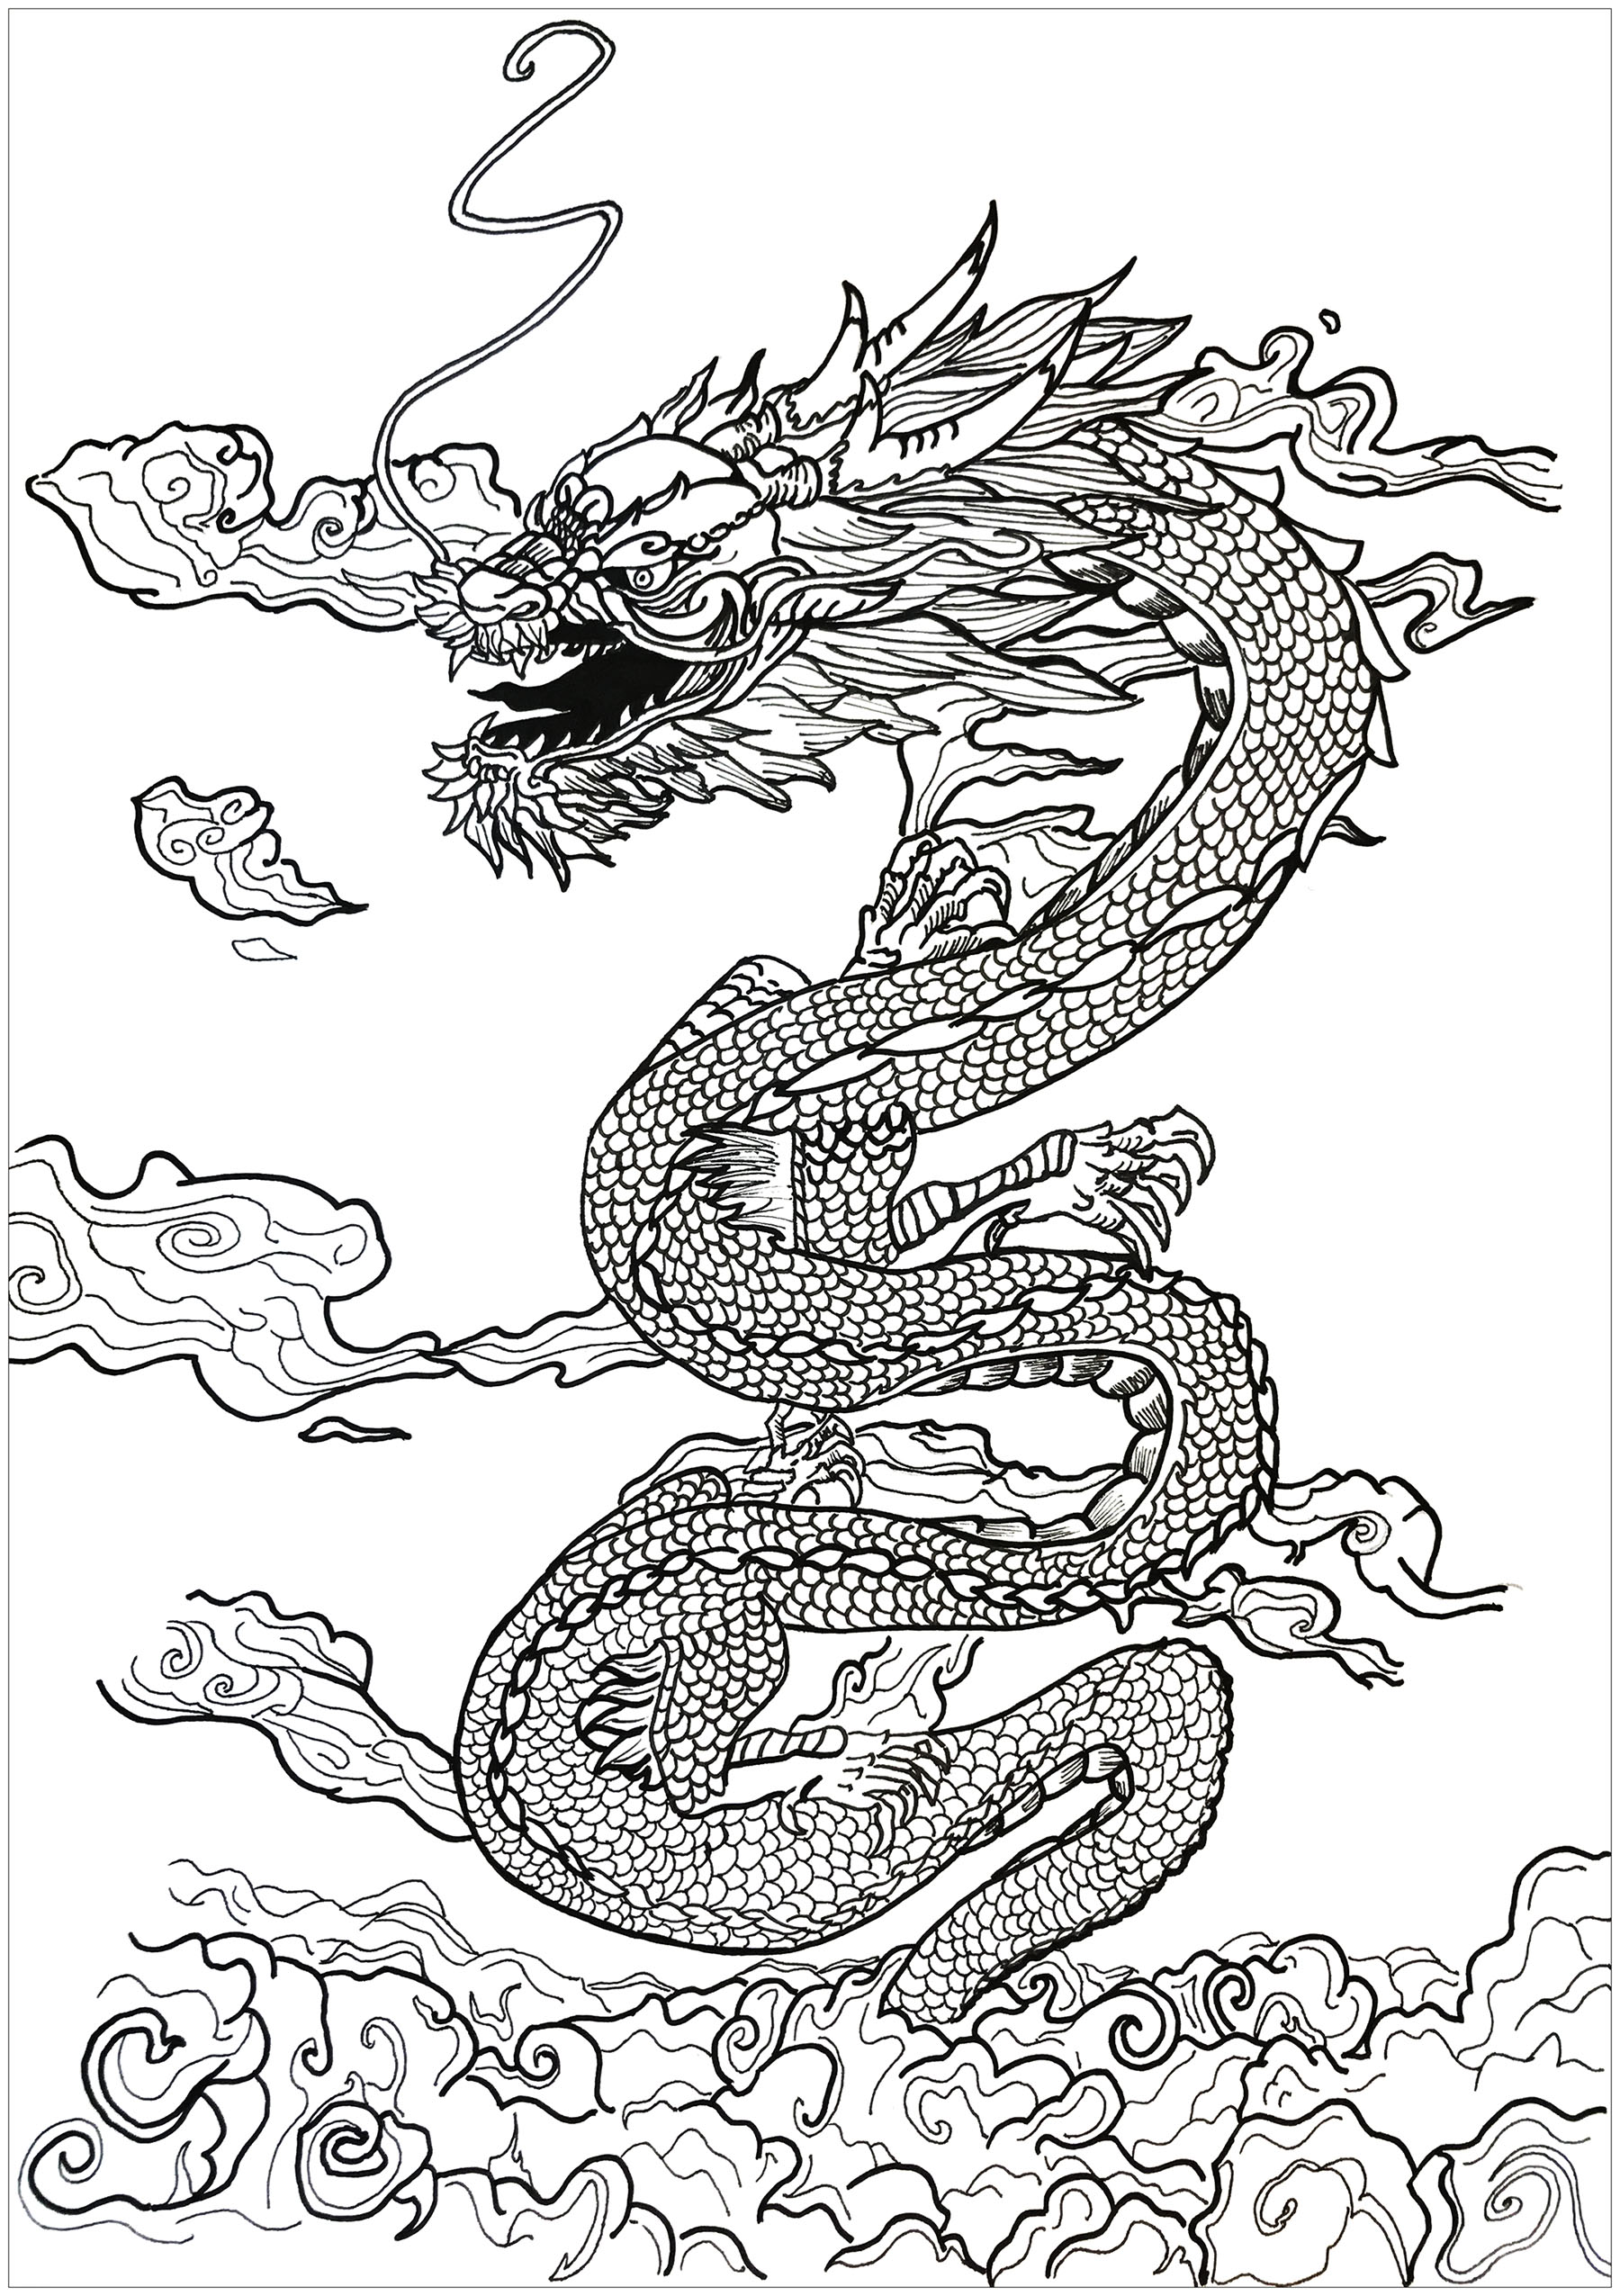 Dragon asian inspiration | Myths & legends - Coloring ...